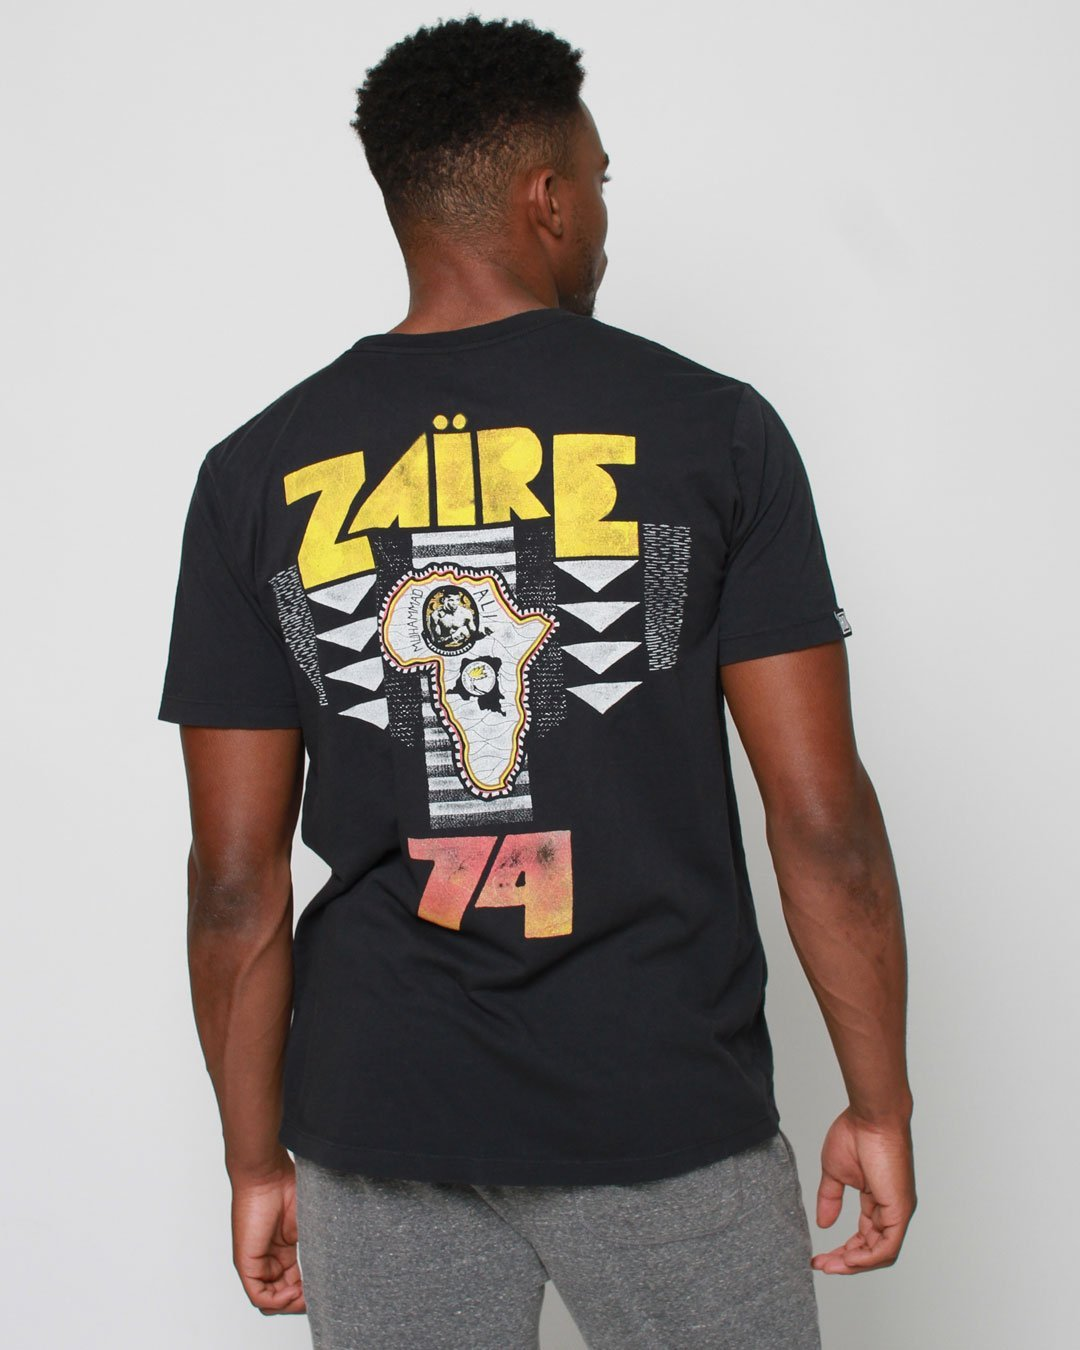 Ali Rumble Zaire 1974 Tee - Roots of Inc dba Roots of Fight